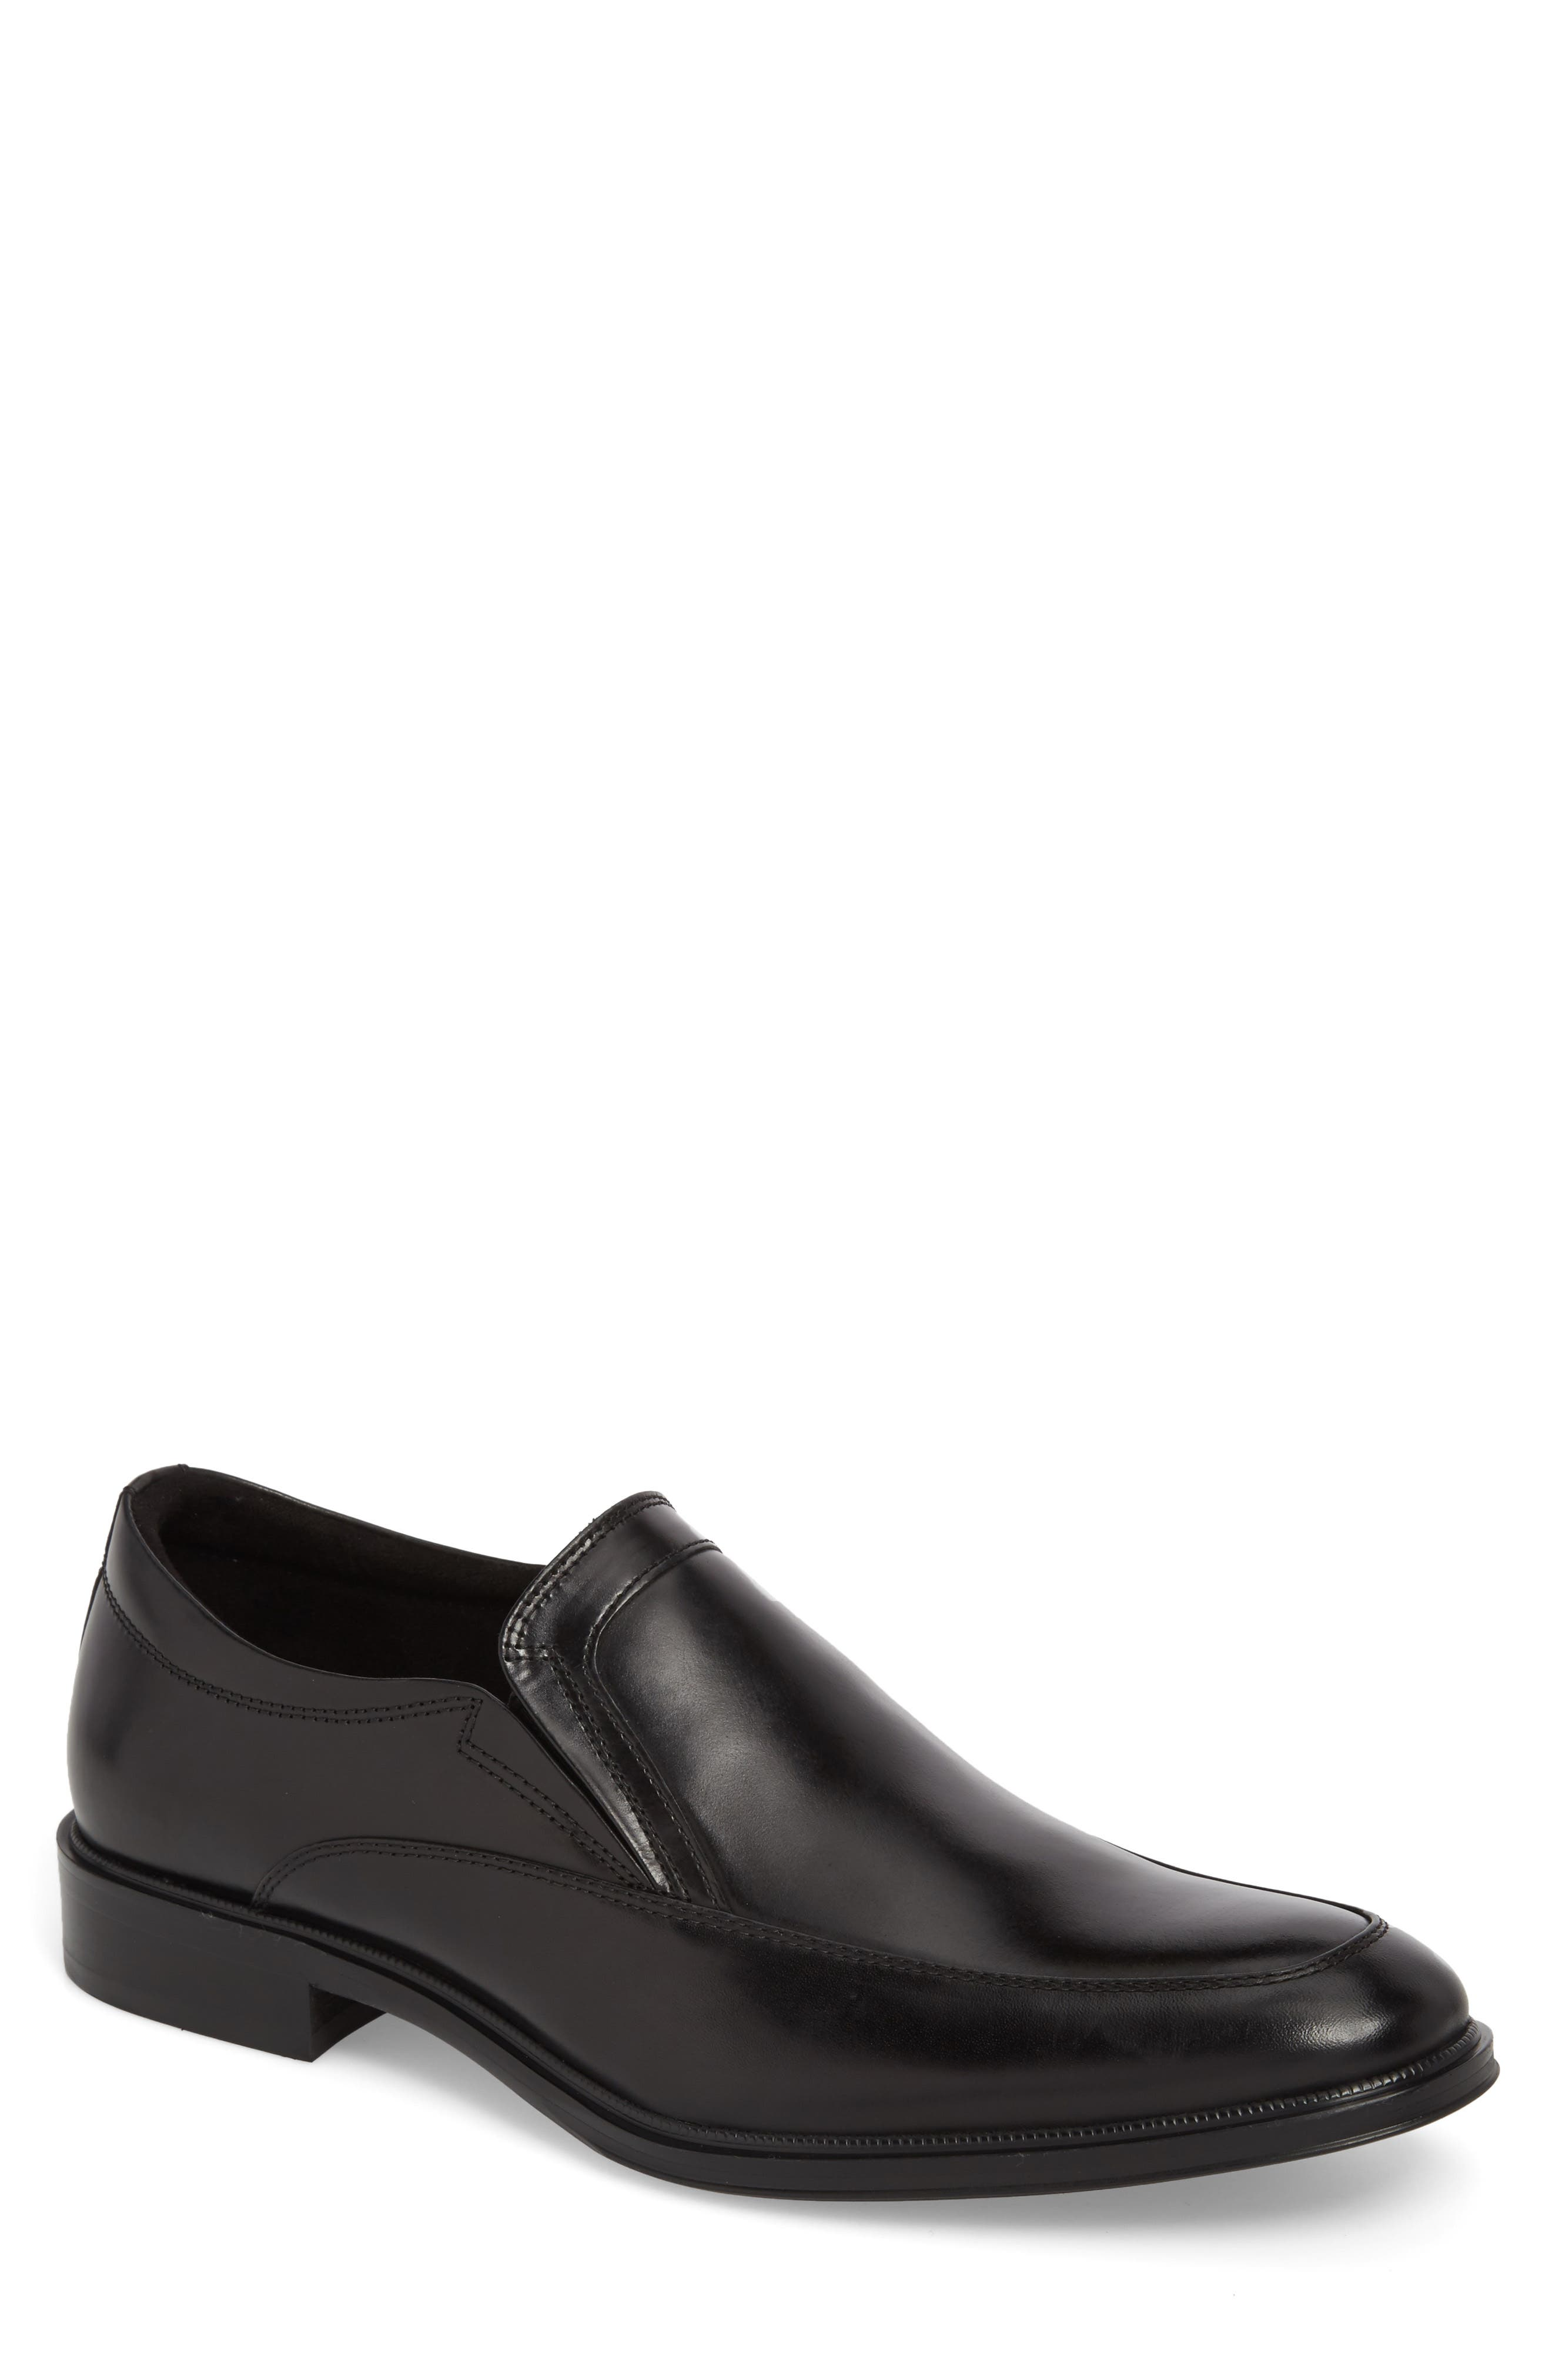 Tully Venetian Loafer,                             Main thumbnail 1, color,                             Black Leather